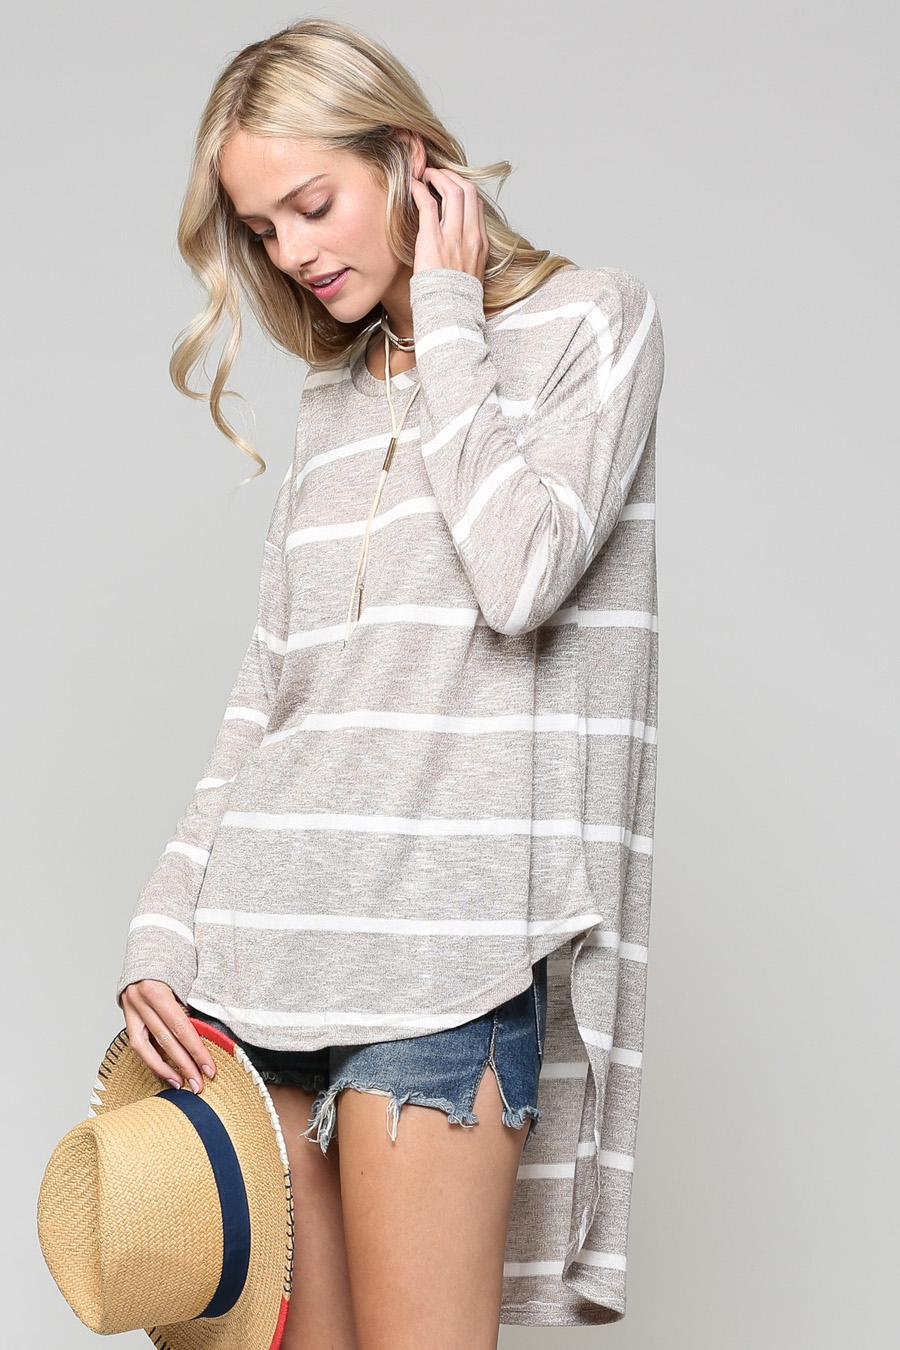 OVERSIZED STRIPE HIGH-LOW TOP - orangeshine.com